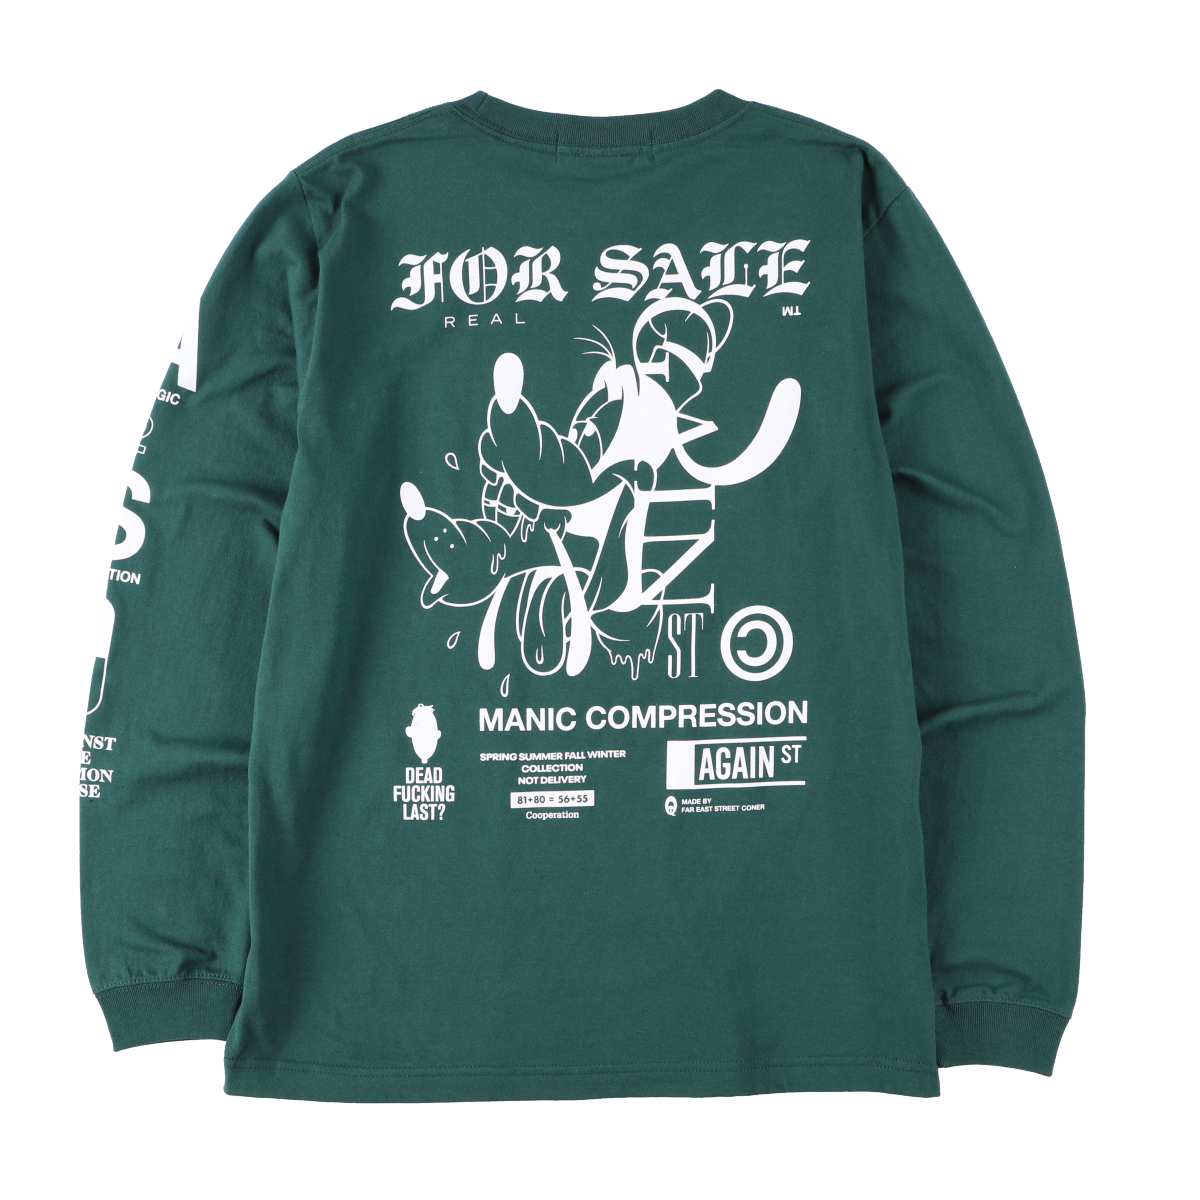 FOR SALE L/S Tee Forest Green